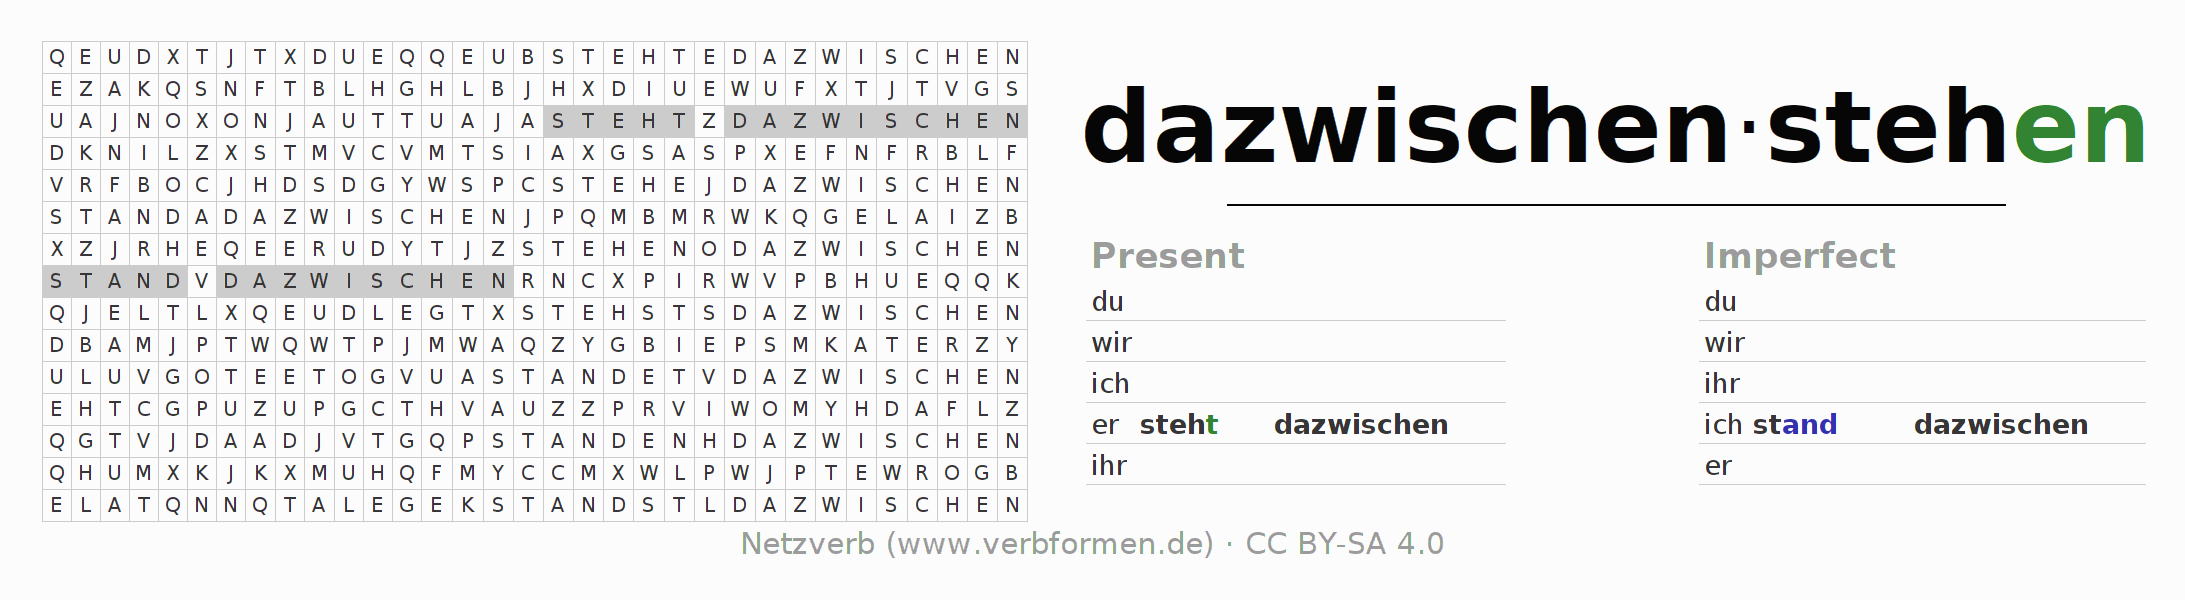 Word search puzzle for the conjugation of the verb dazwischenstehen (hat)